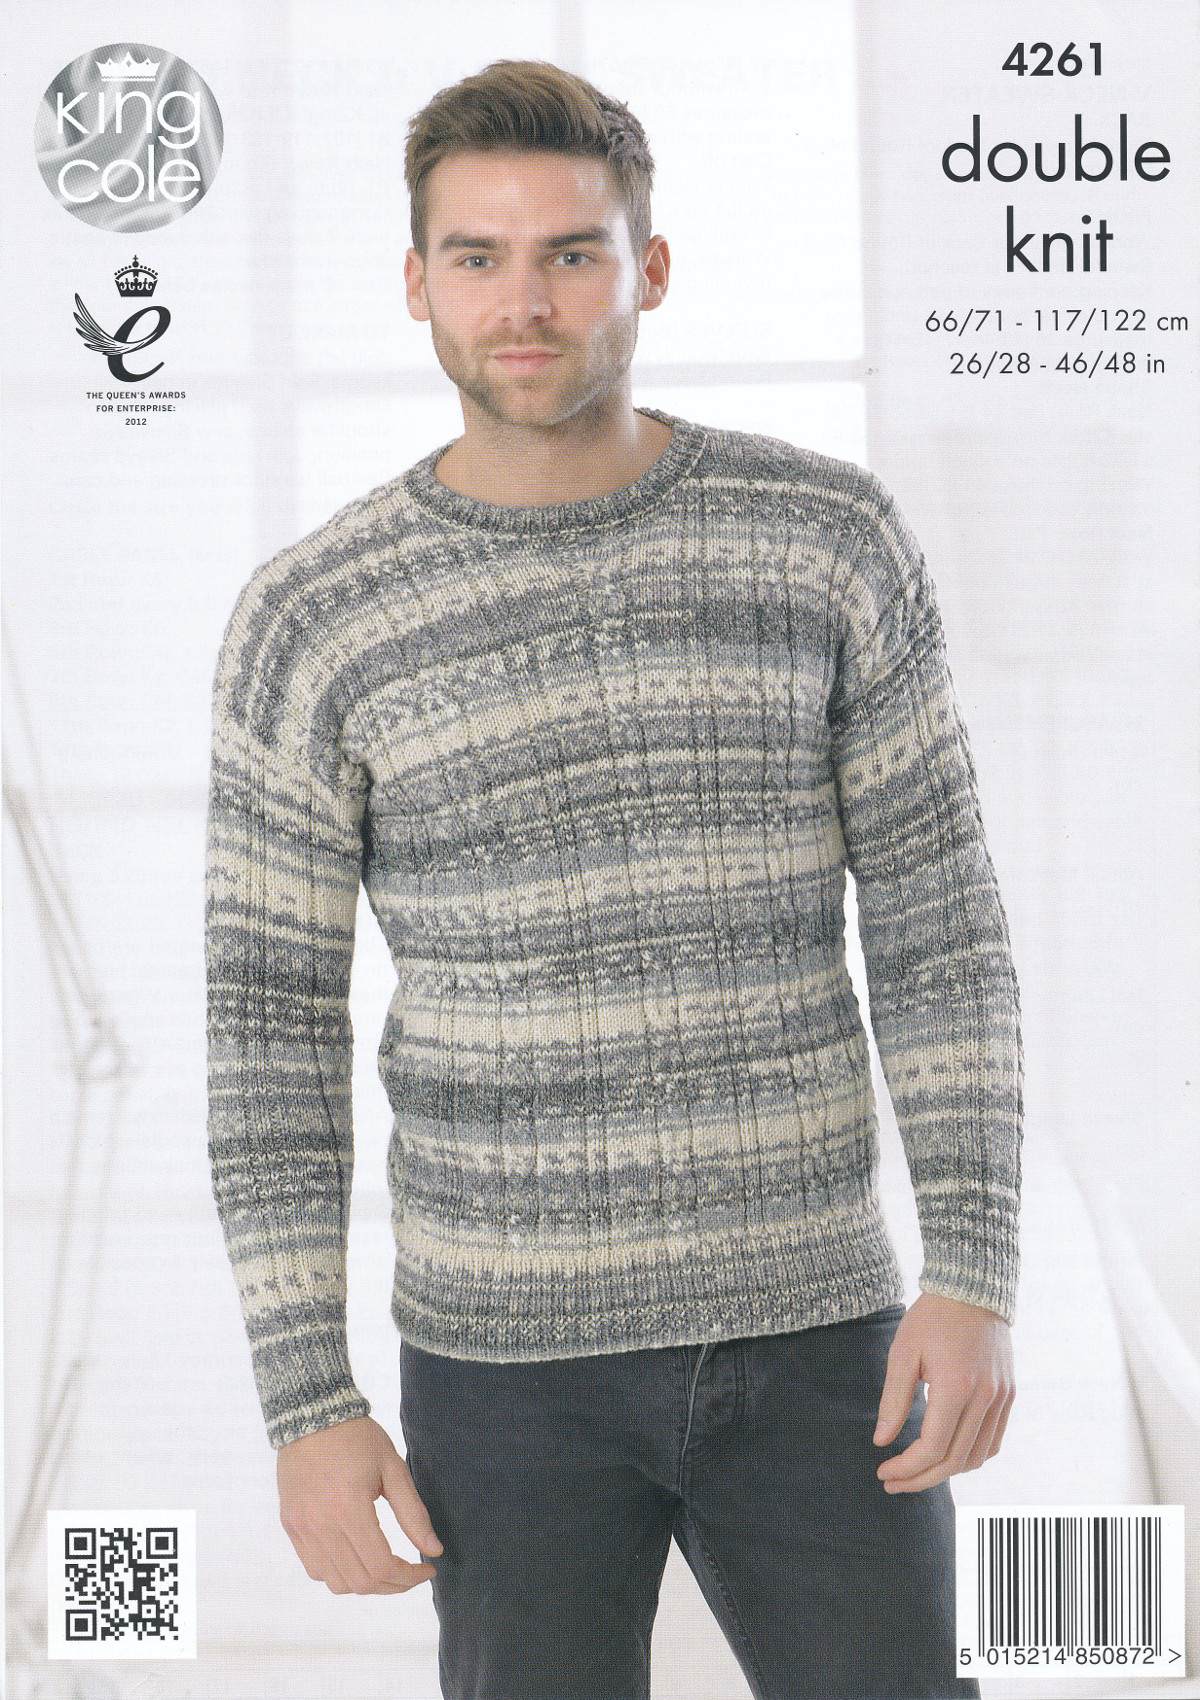 Knitting Pattern King Cole : King Cole Mens Double Knitting Pattern Cable Knit Round or ...